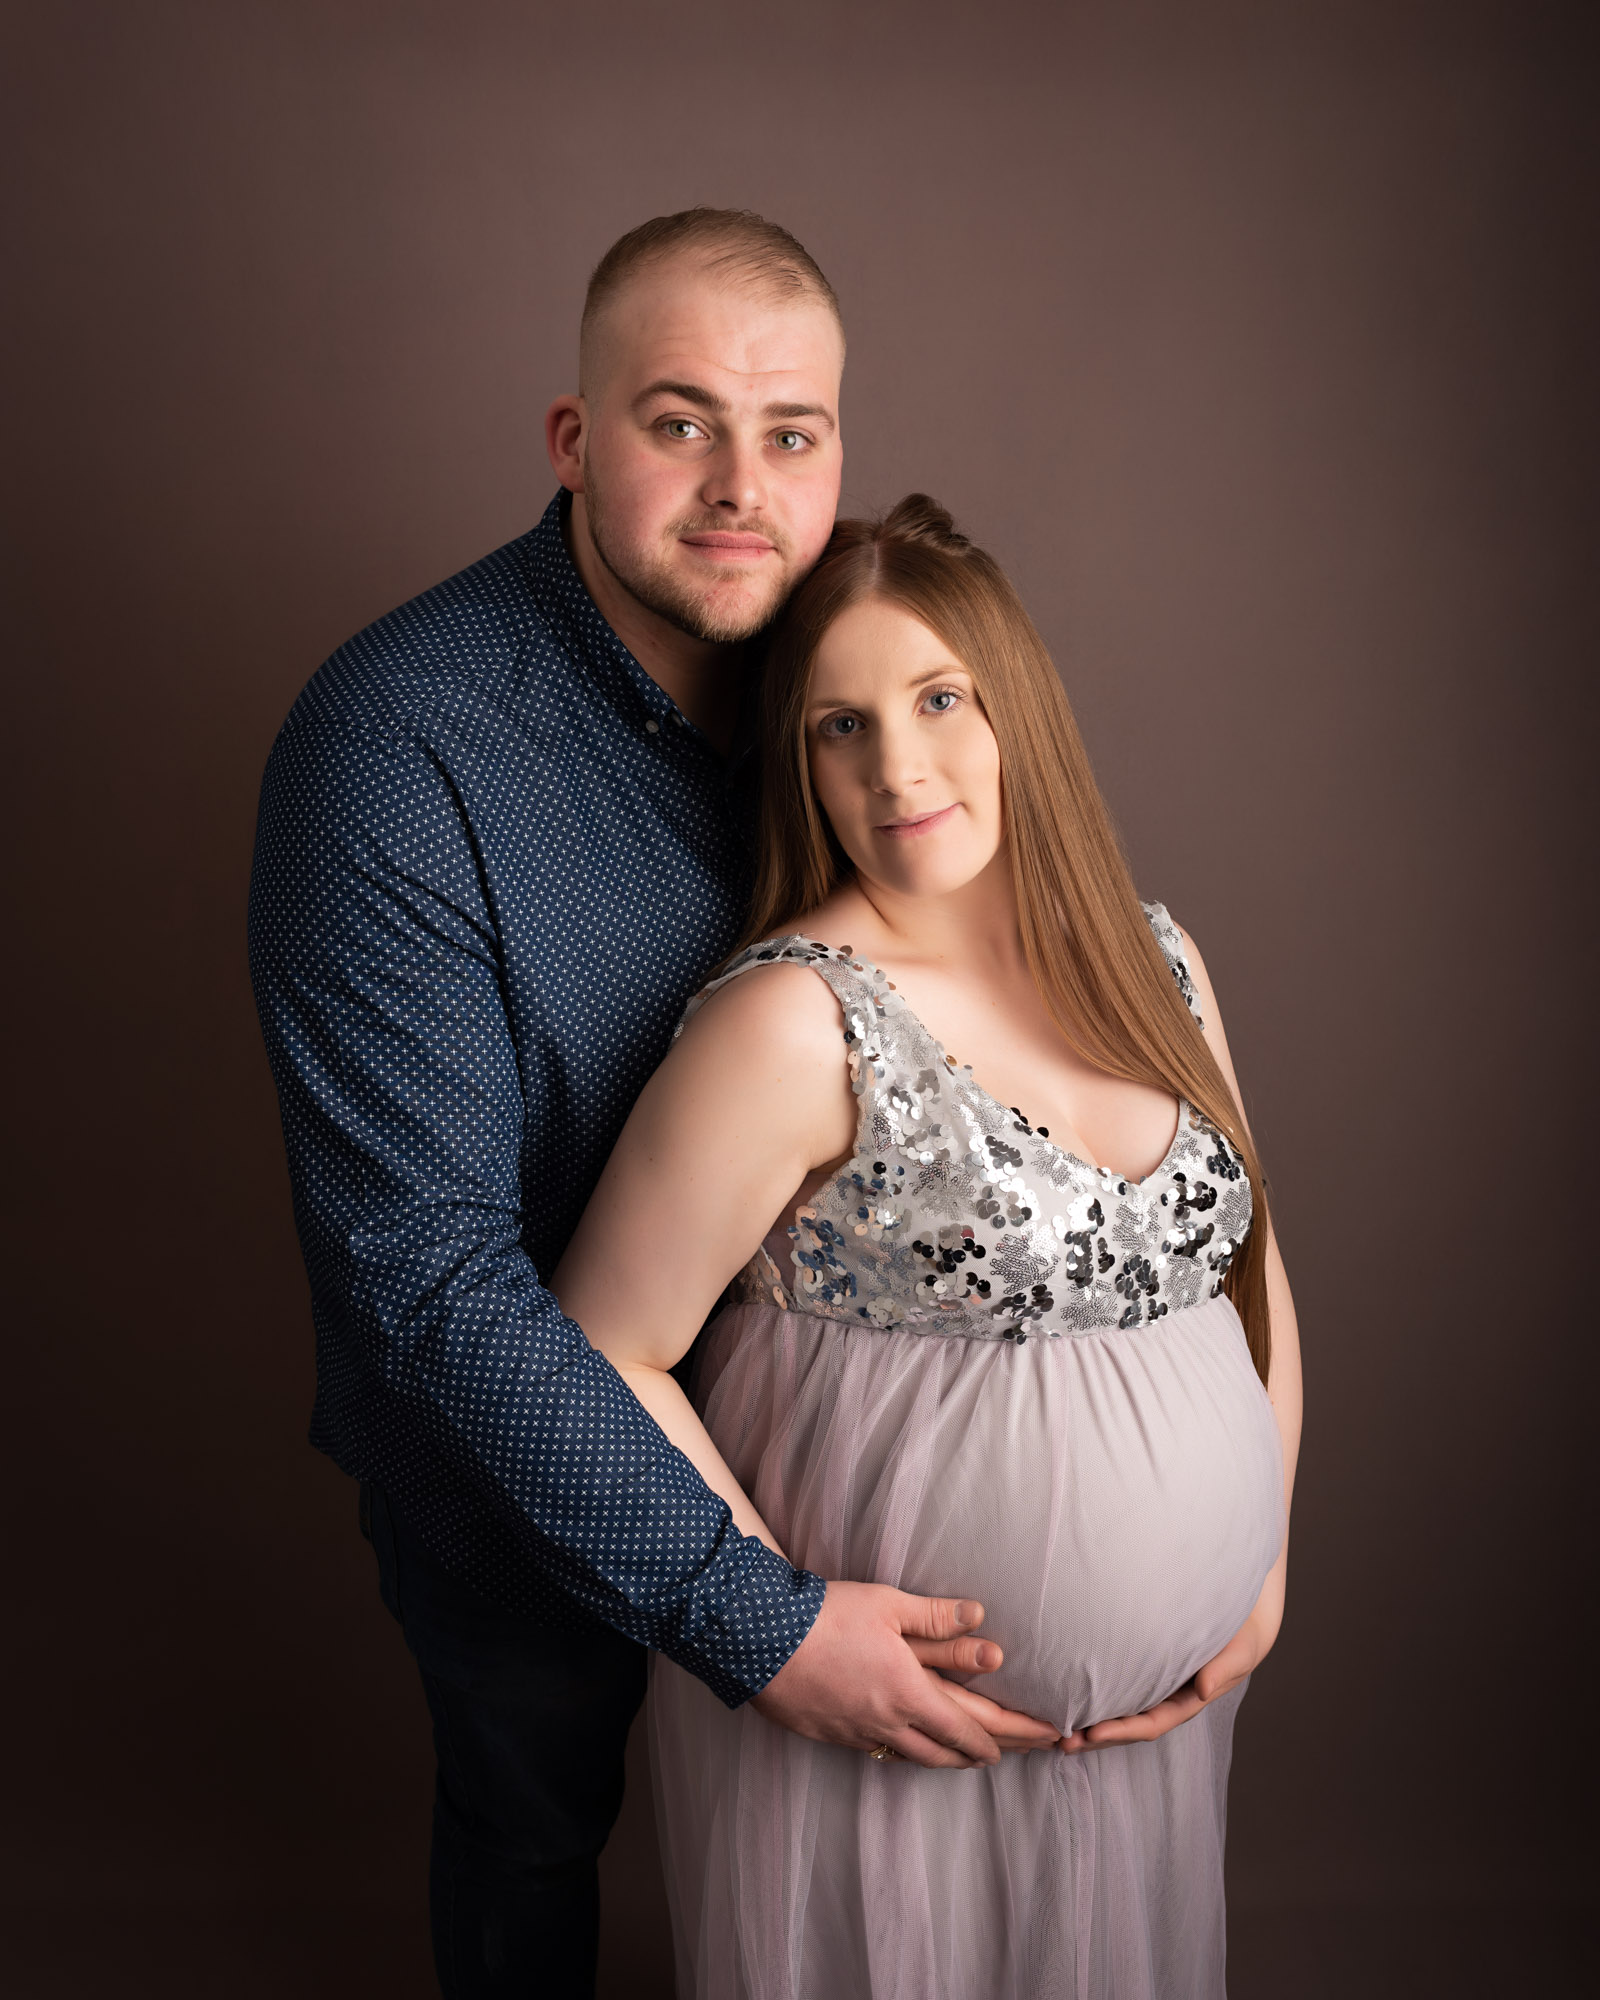 maternity_bump_photography_dudley